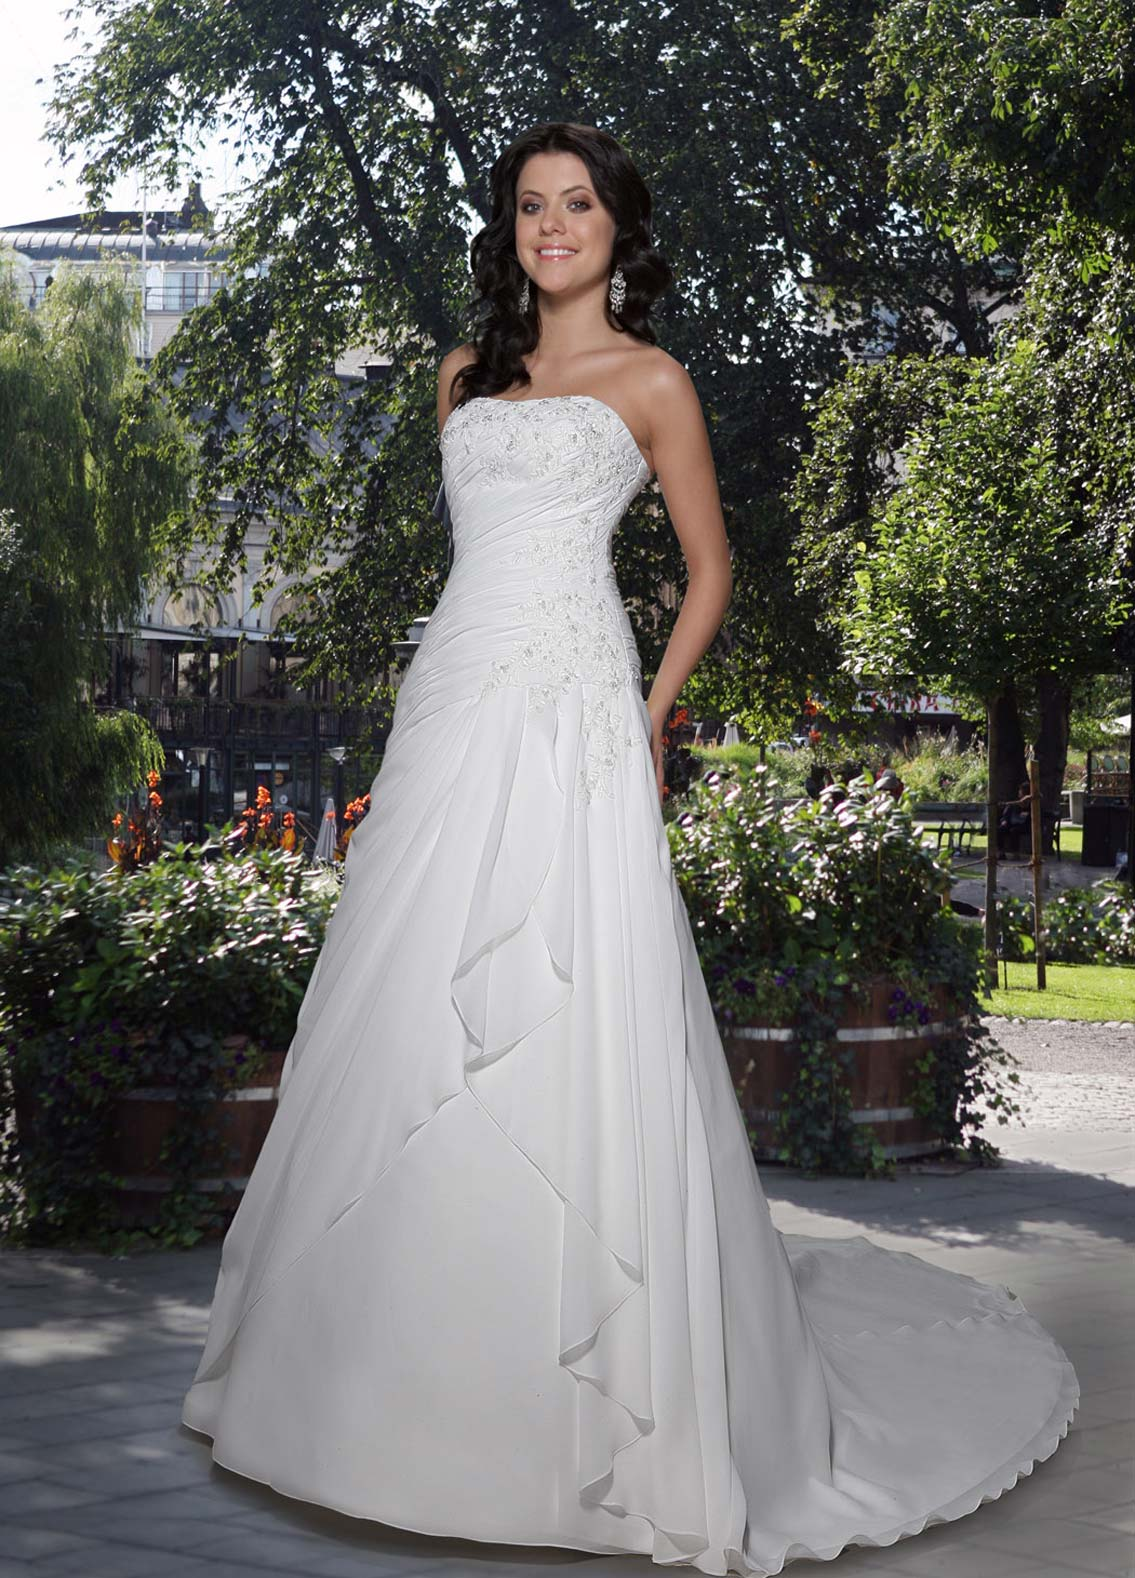 8371AL | DaVinci Bridal Blog